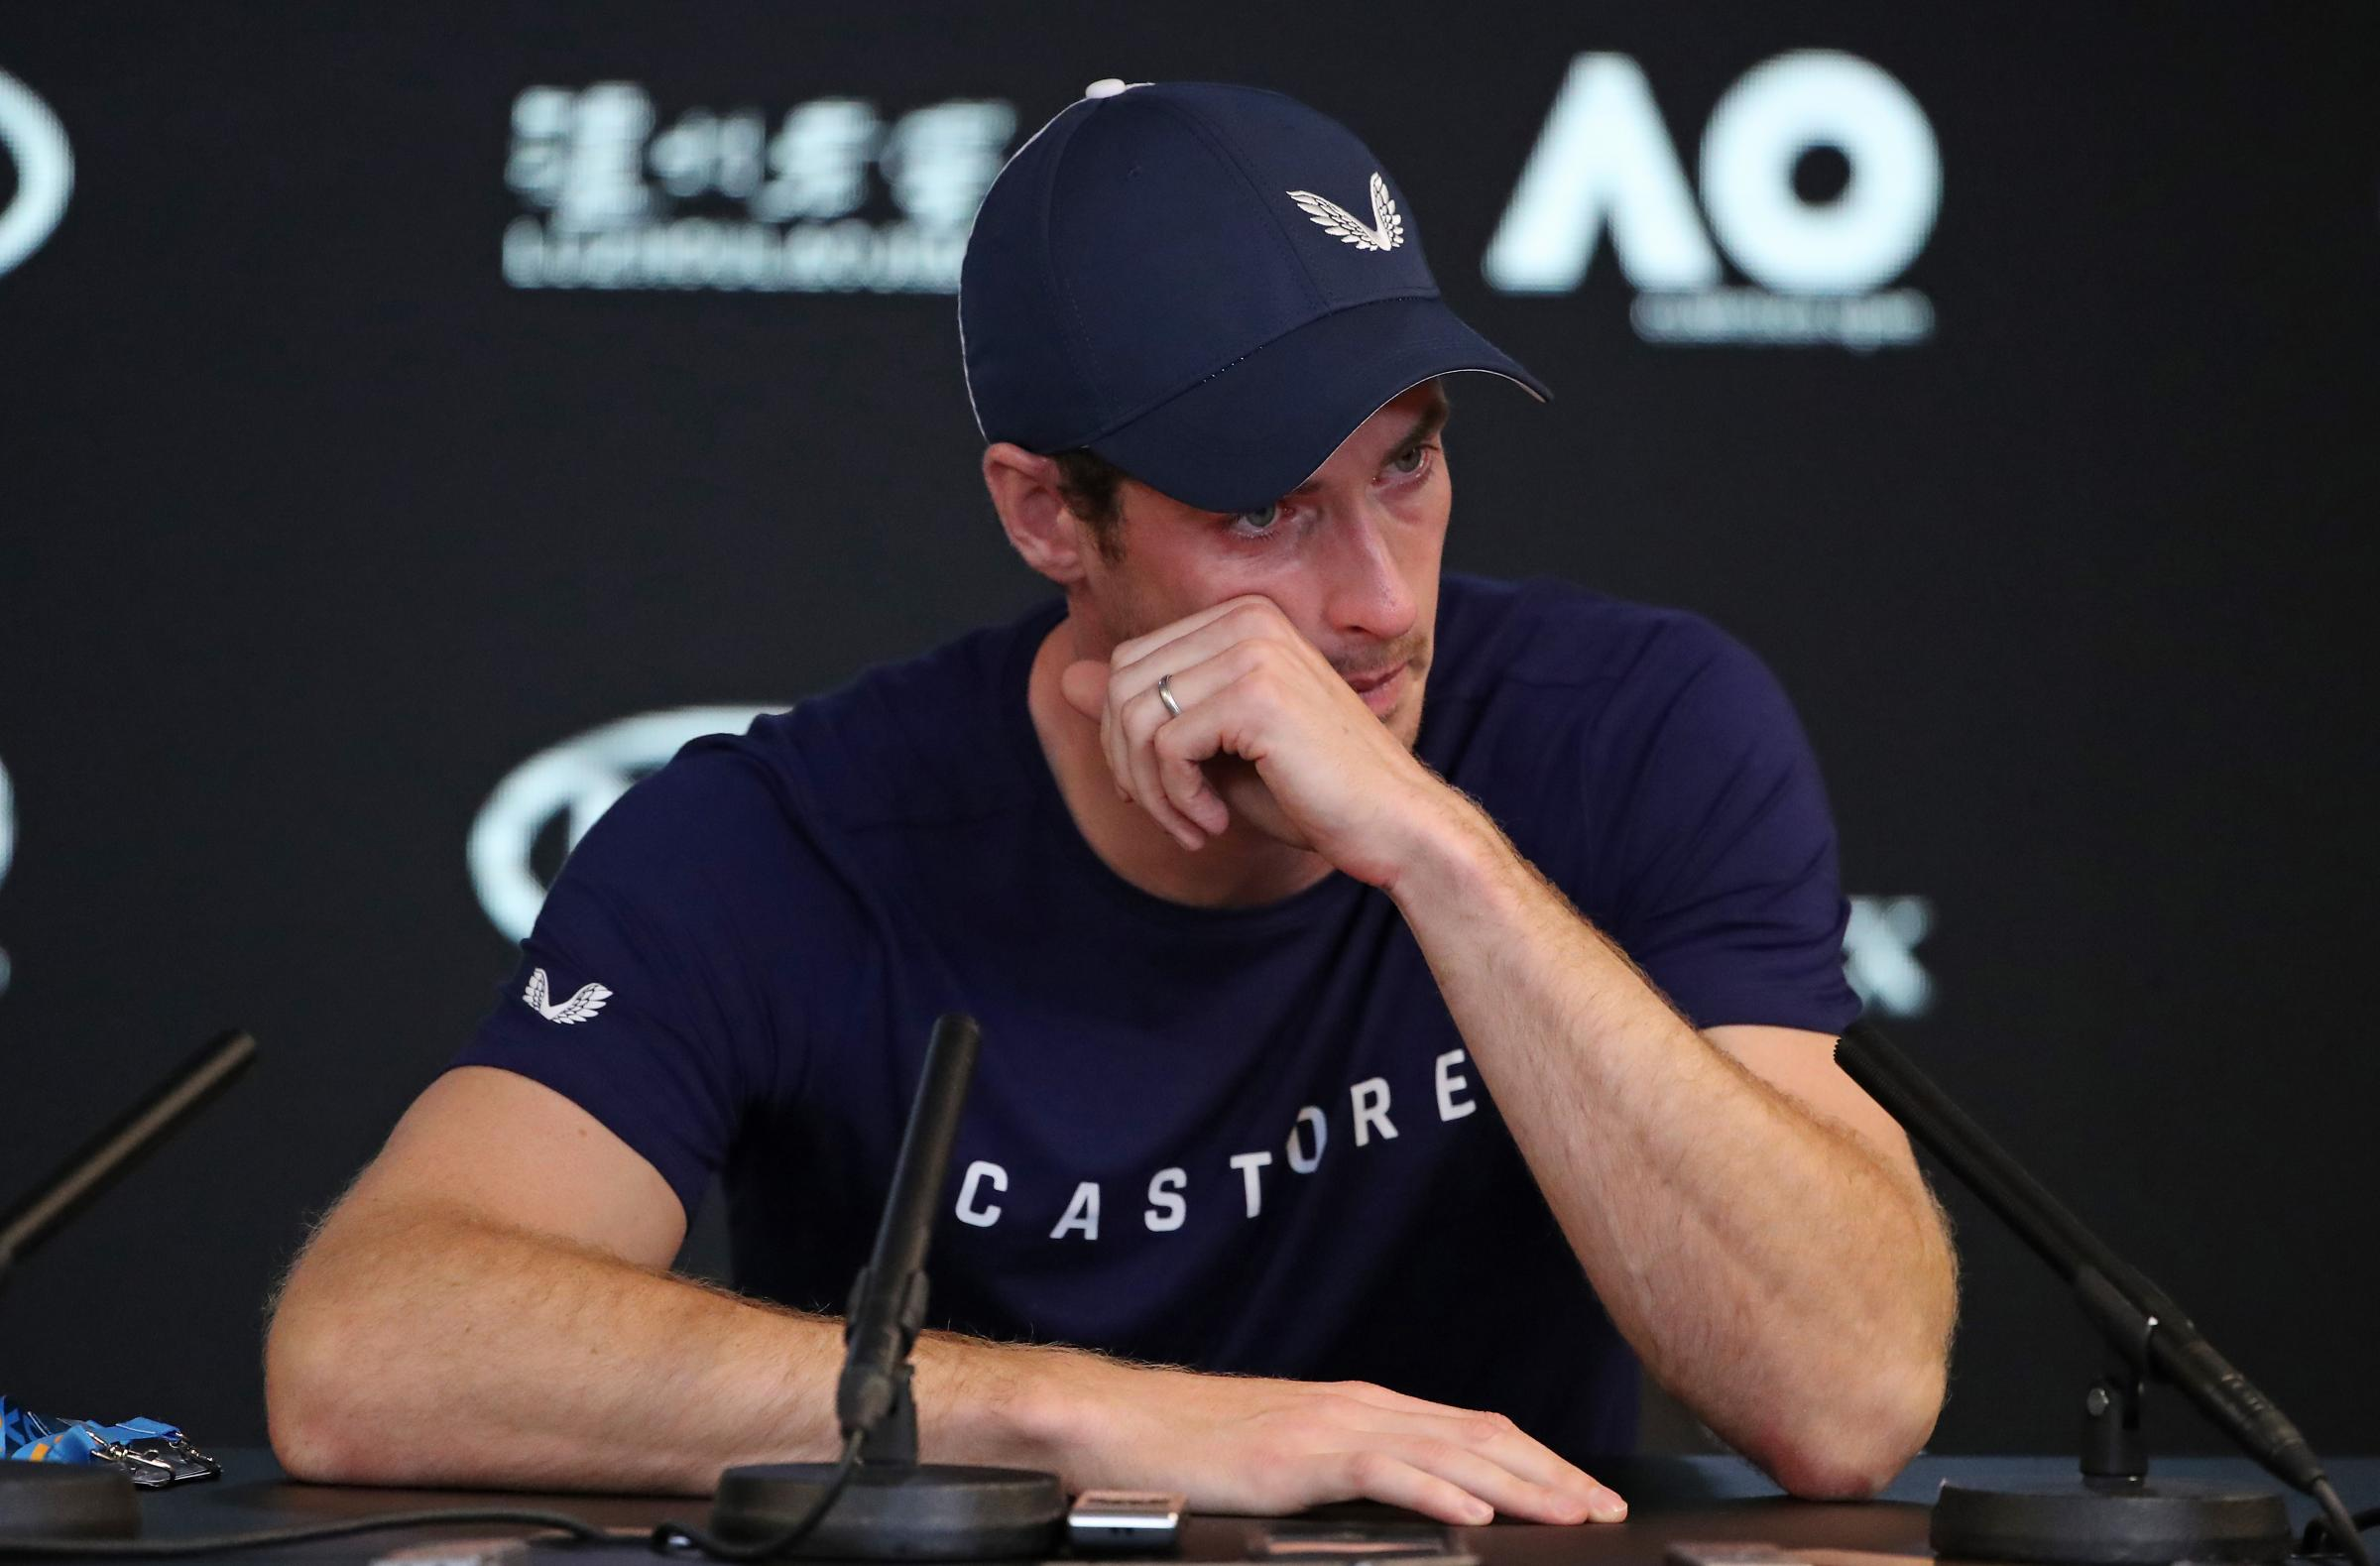 During an emotional press conference last week, Andy Murray announced that he would be retiring from tennis